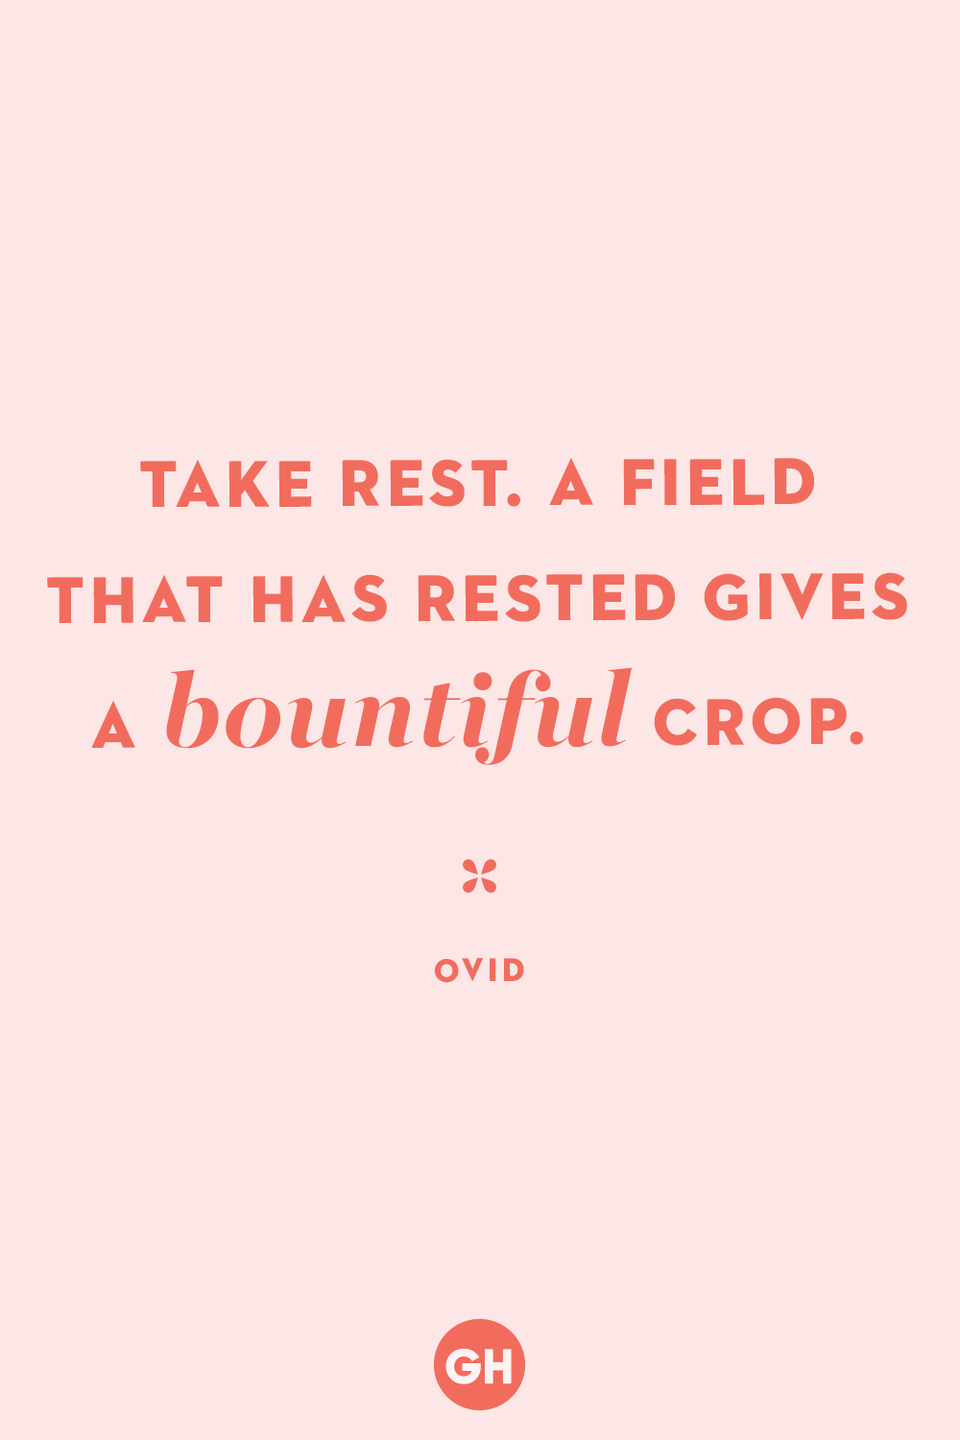 <p>Take rest. A field that has rested gives a bountiful crop. </p>